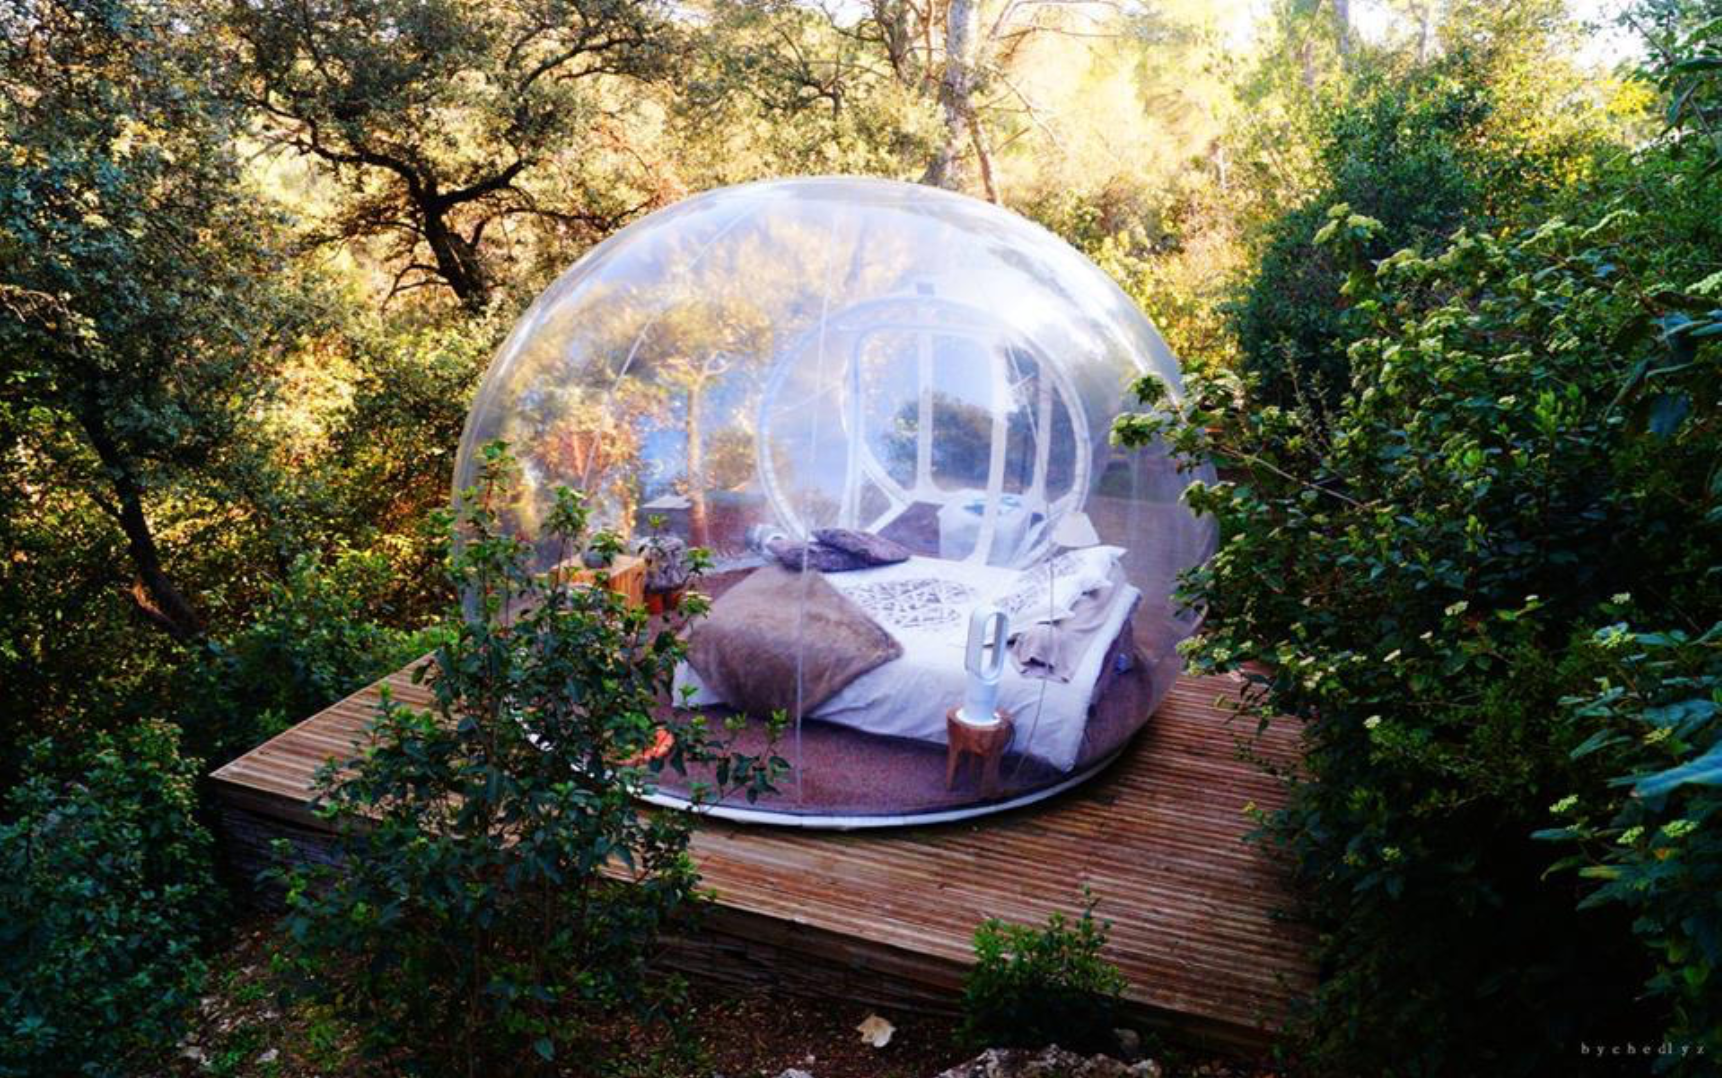 insolite dormir dans une bulle un h bergement de r ve style imparfait. Black Bedroom Furniture Sets. Home Design Ideas